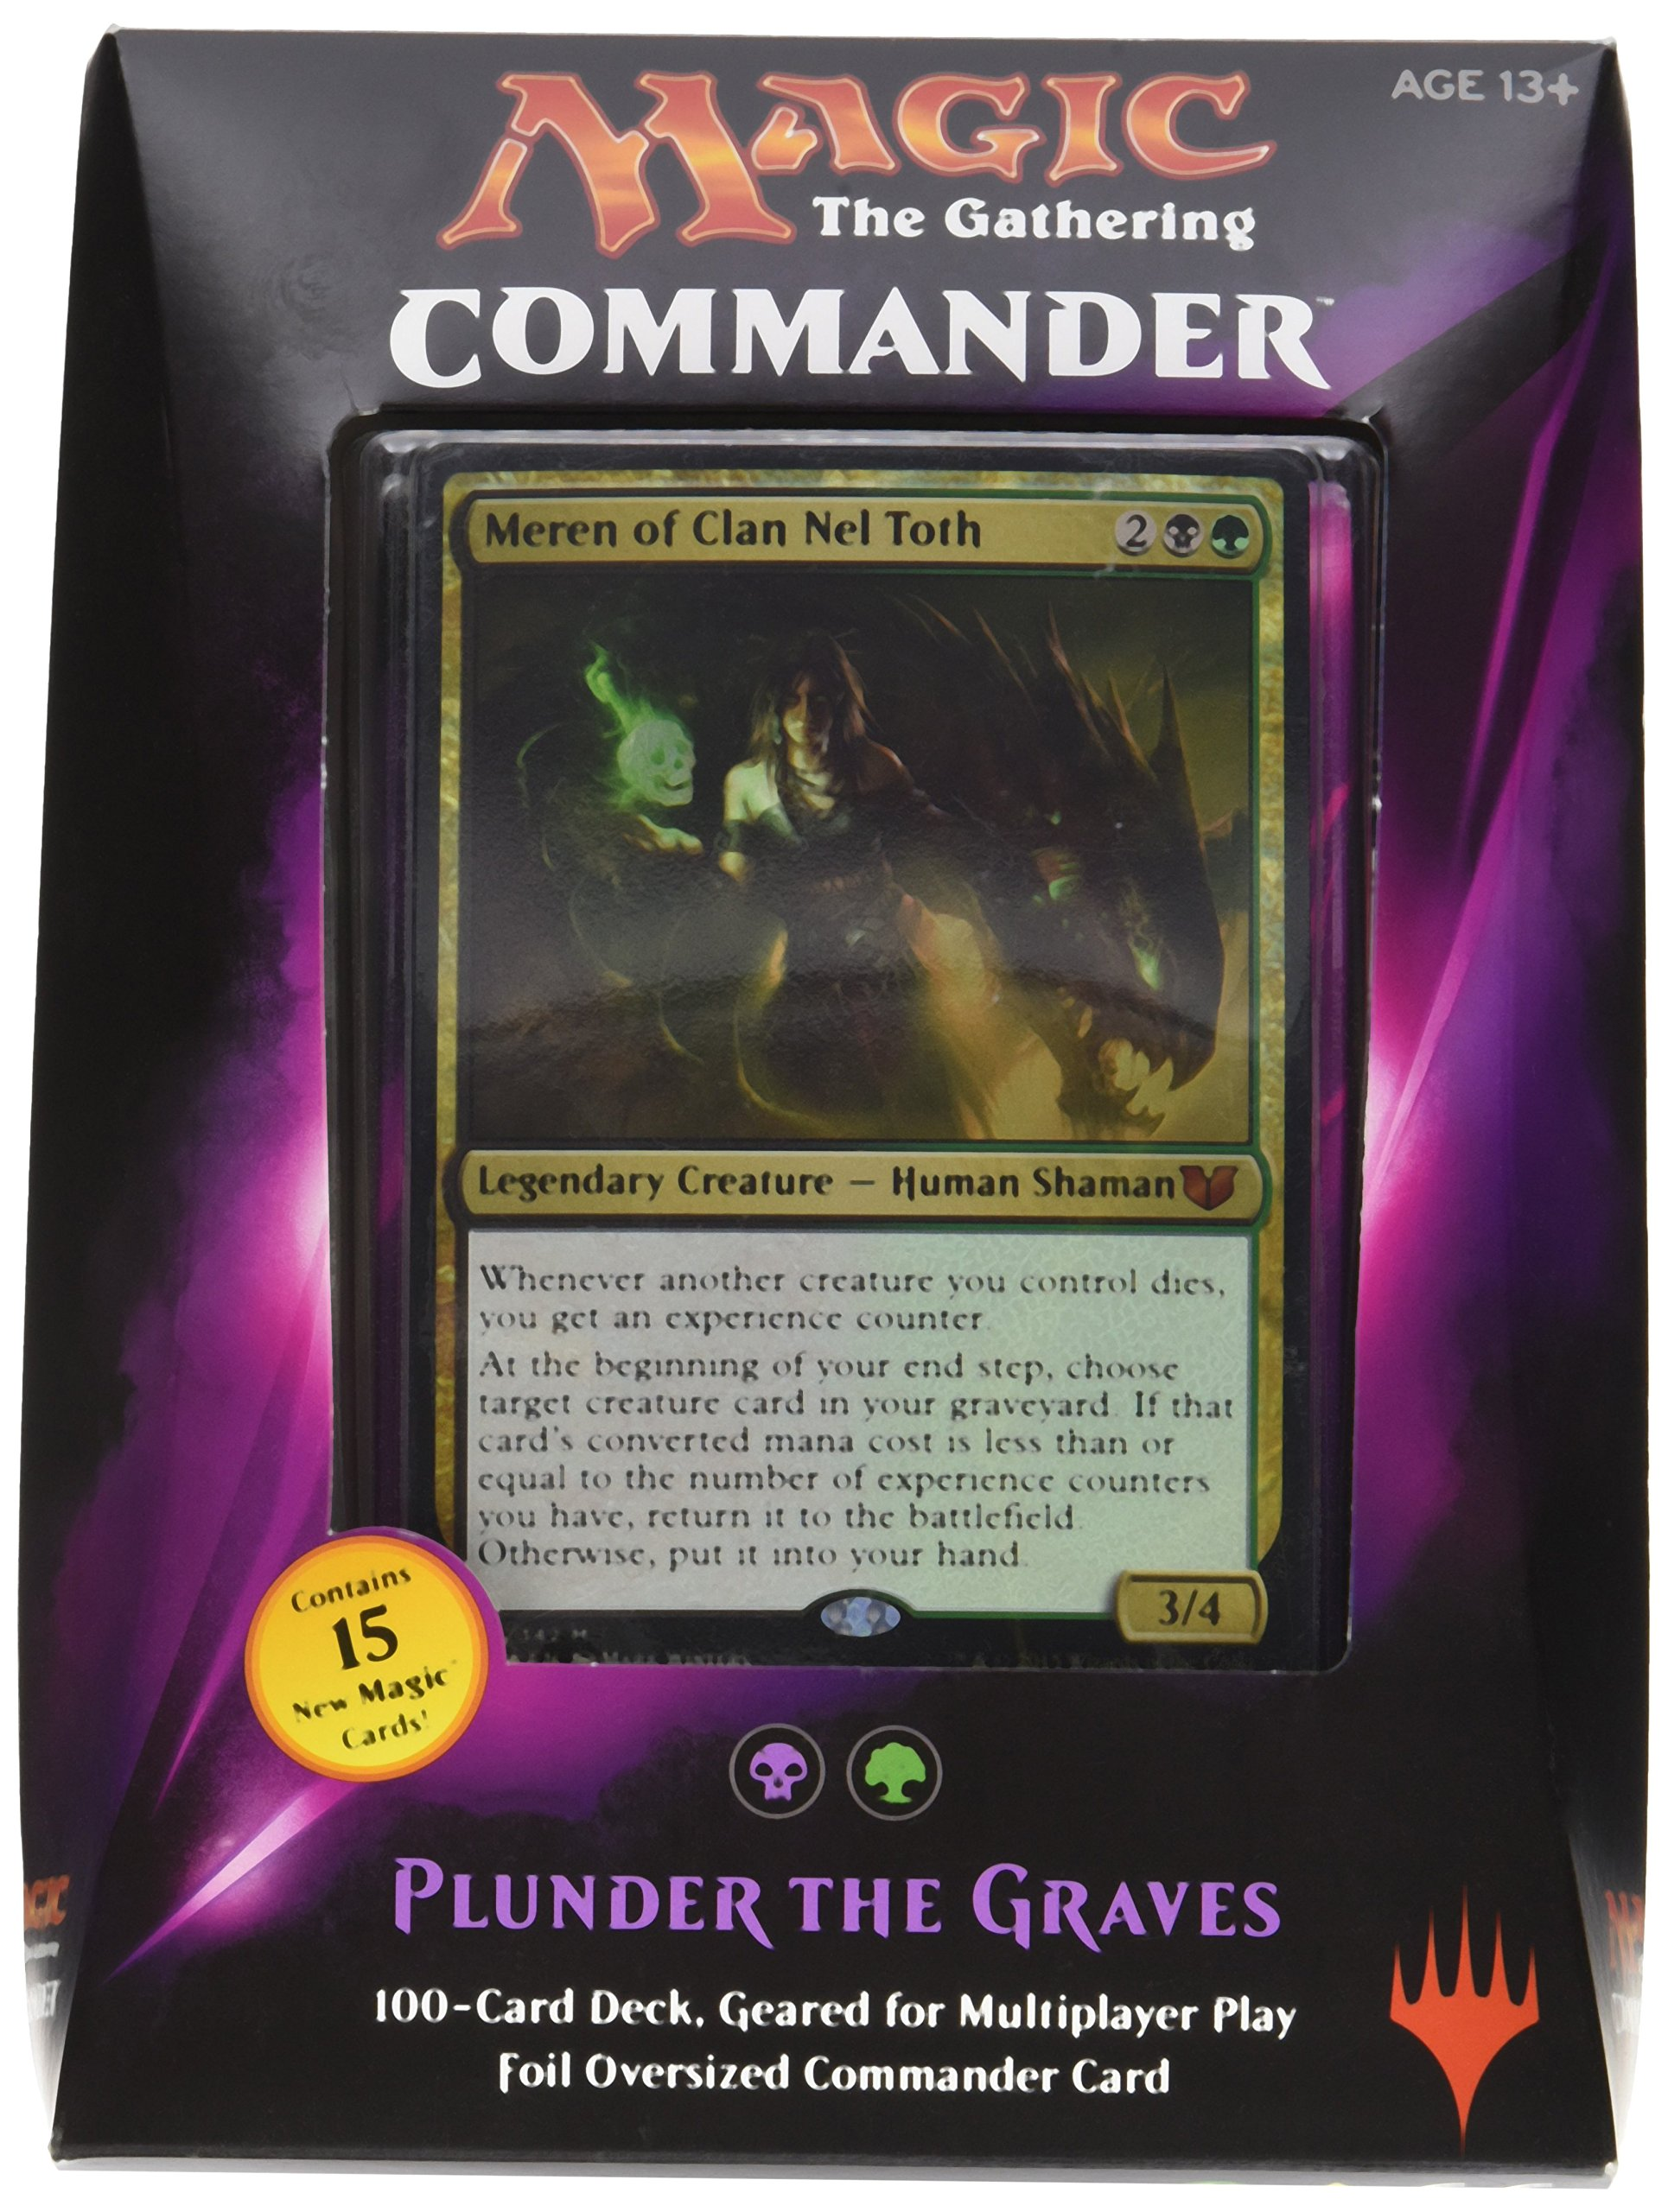 MTG Commander 2015 Edition Magic the Gathering TCG Card Game - Complete Set of All 5 Decks by Magic: the Gathering